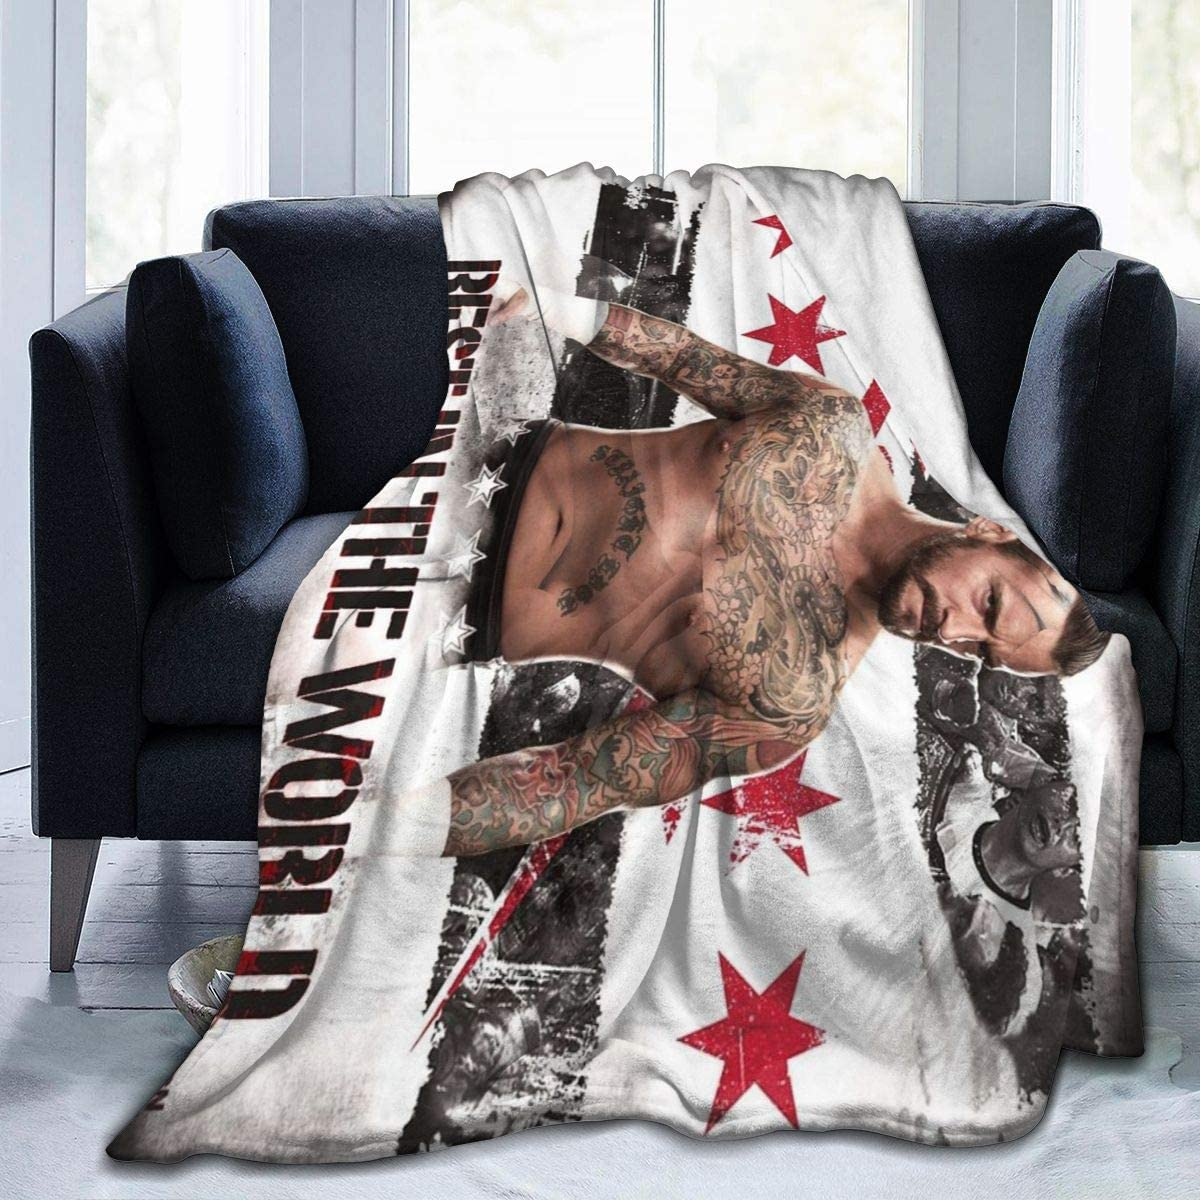 WWE CM Pu&nk Iconic action Flannel Throw Blanket